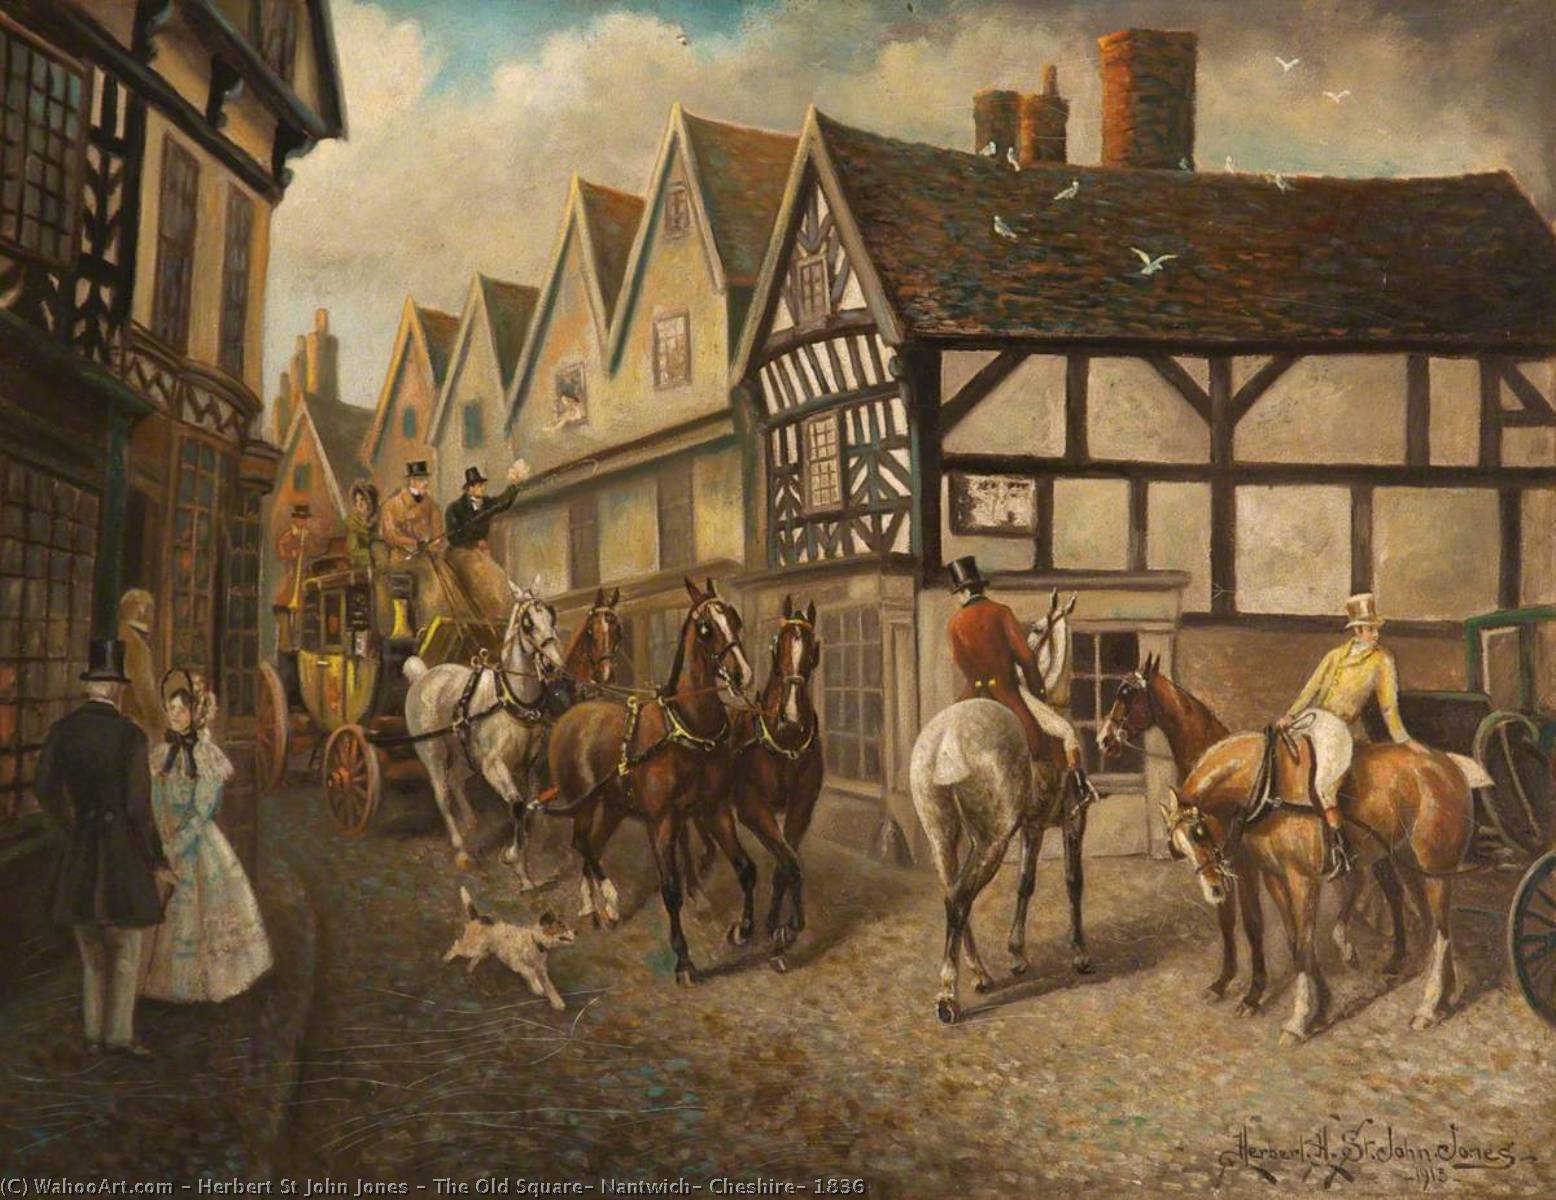 The Old Square, Nantwich, Cheshire, 1836, 1913 by Herbert St John Jones | Museum Quality Reproductions | WahooArt.com